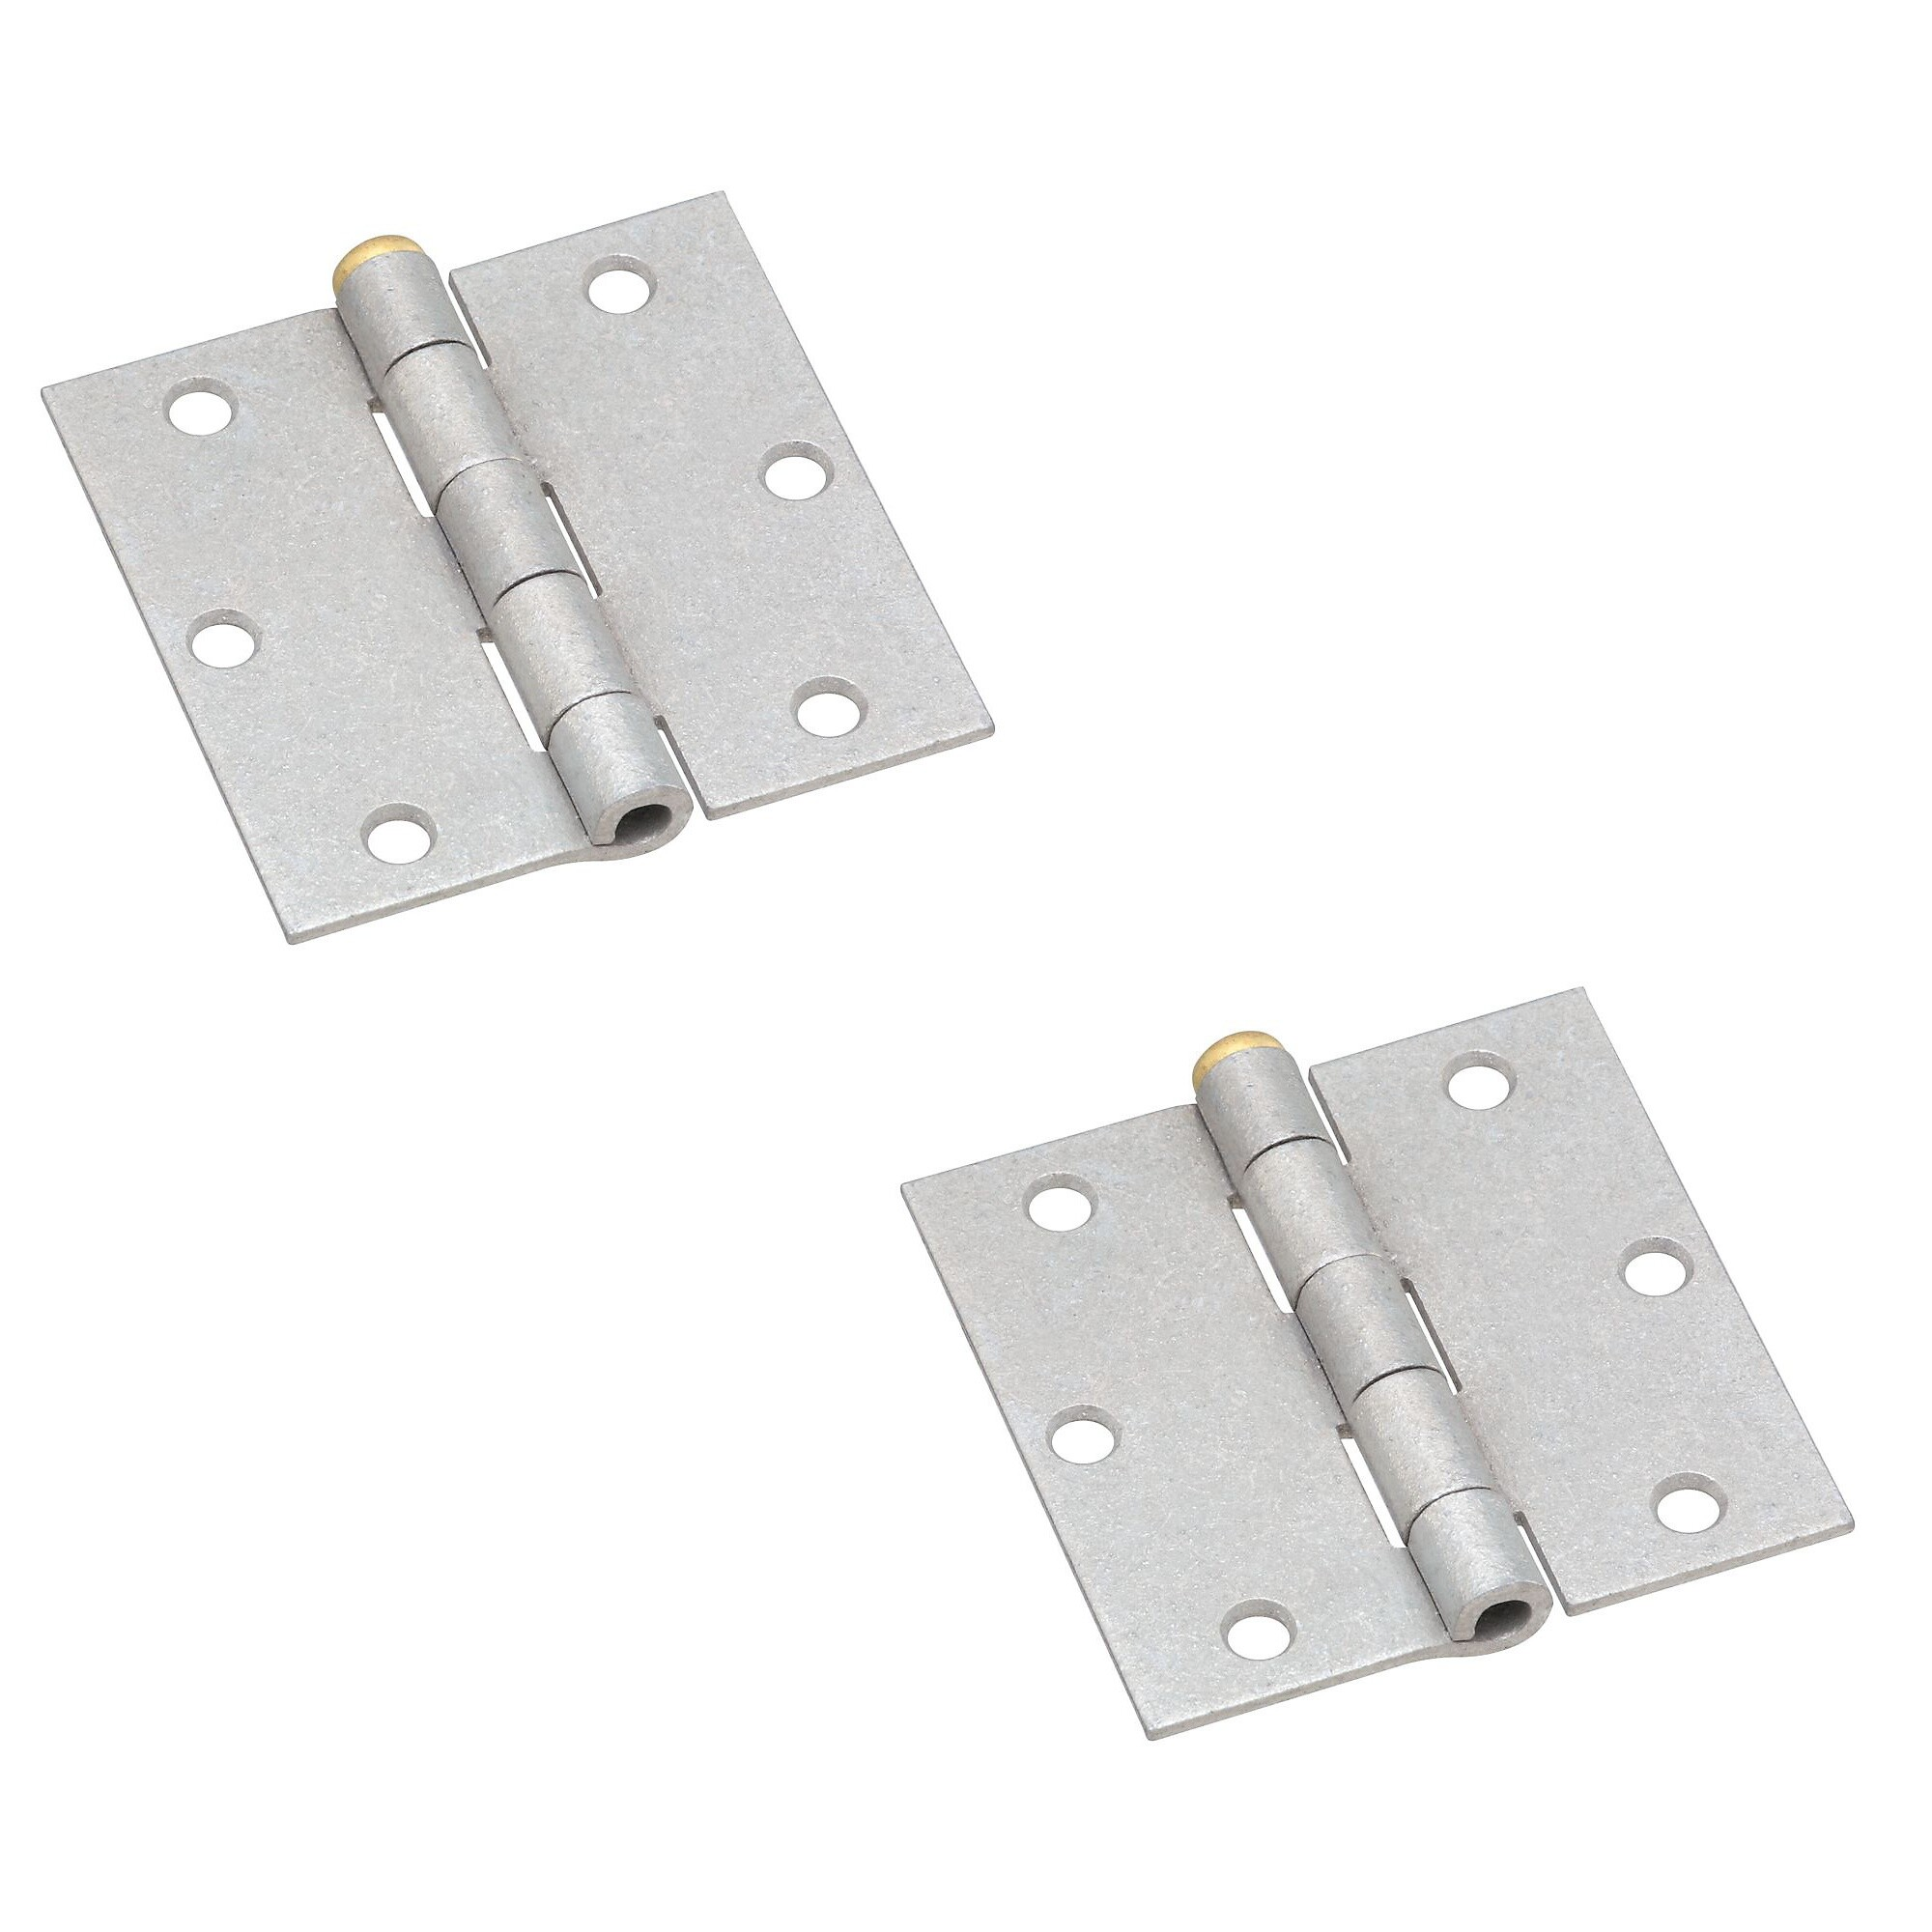 National Hardware N208-827 V504 Removable Pin Broad Hinges in Galvanized 2 pack